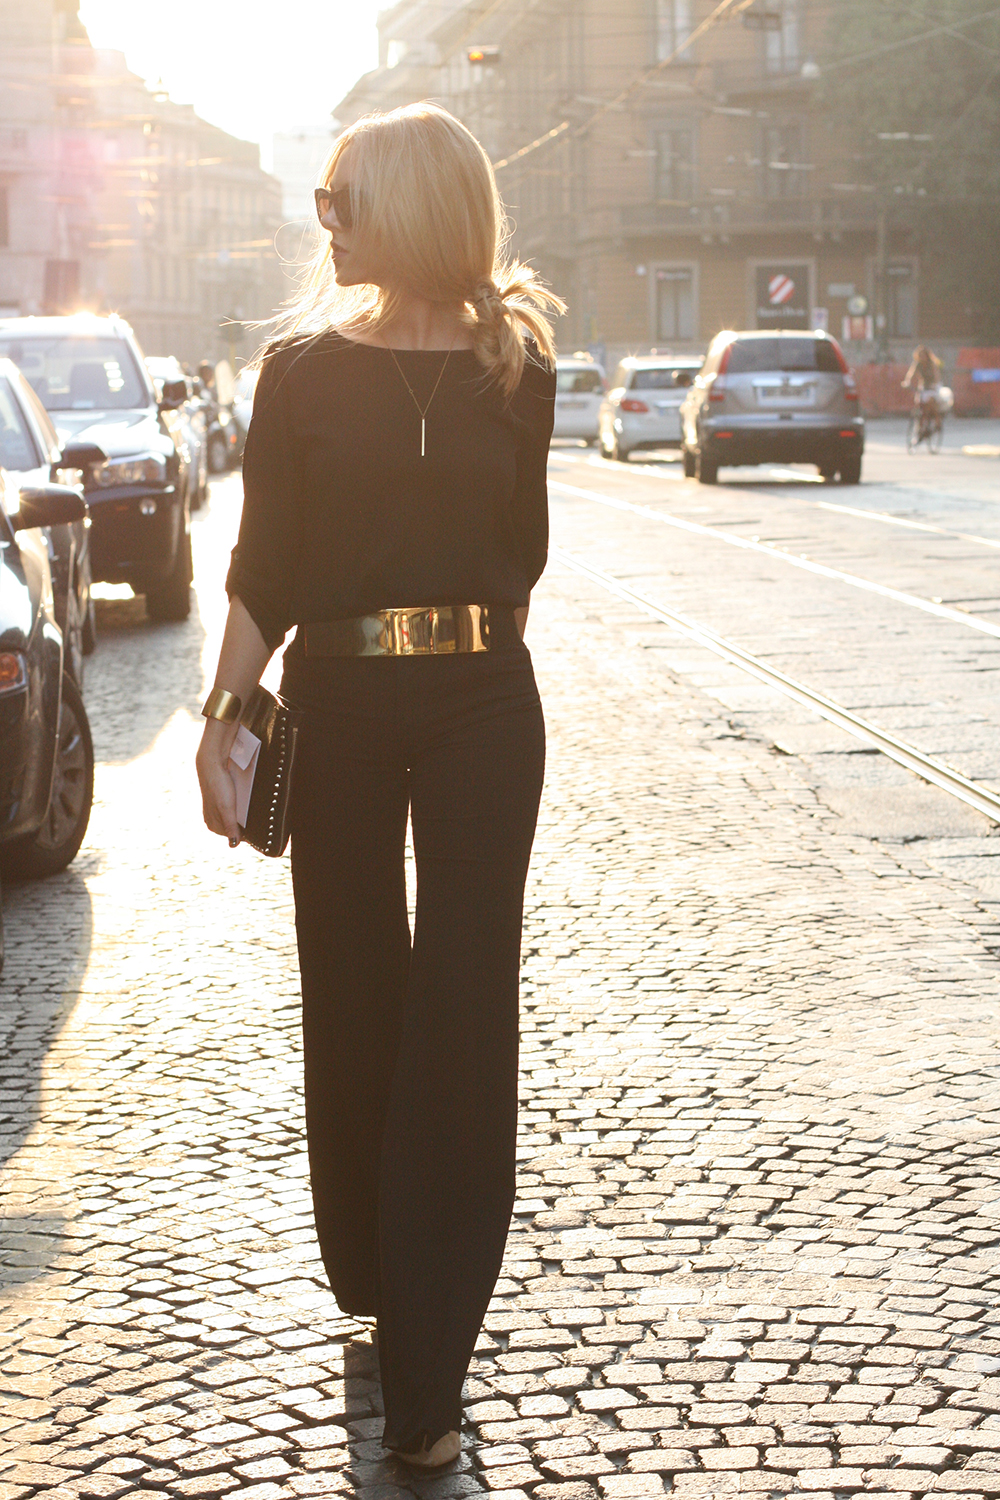 The Solid Gold belt accessory trend